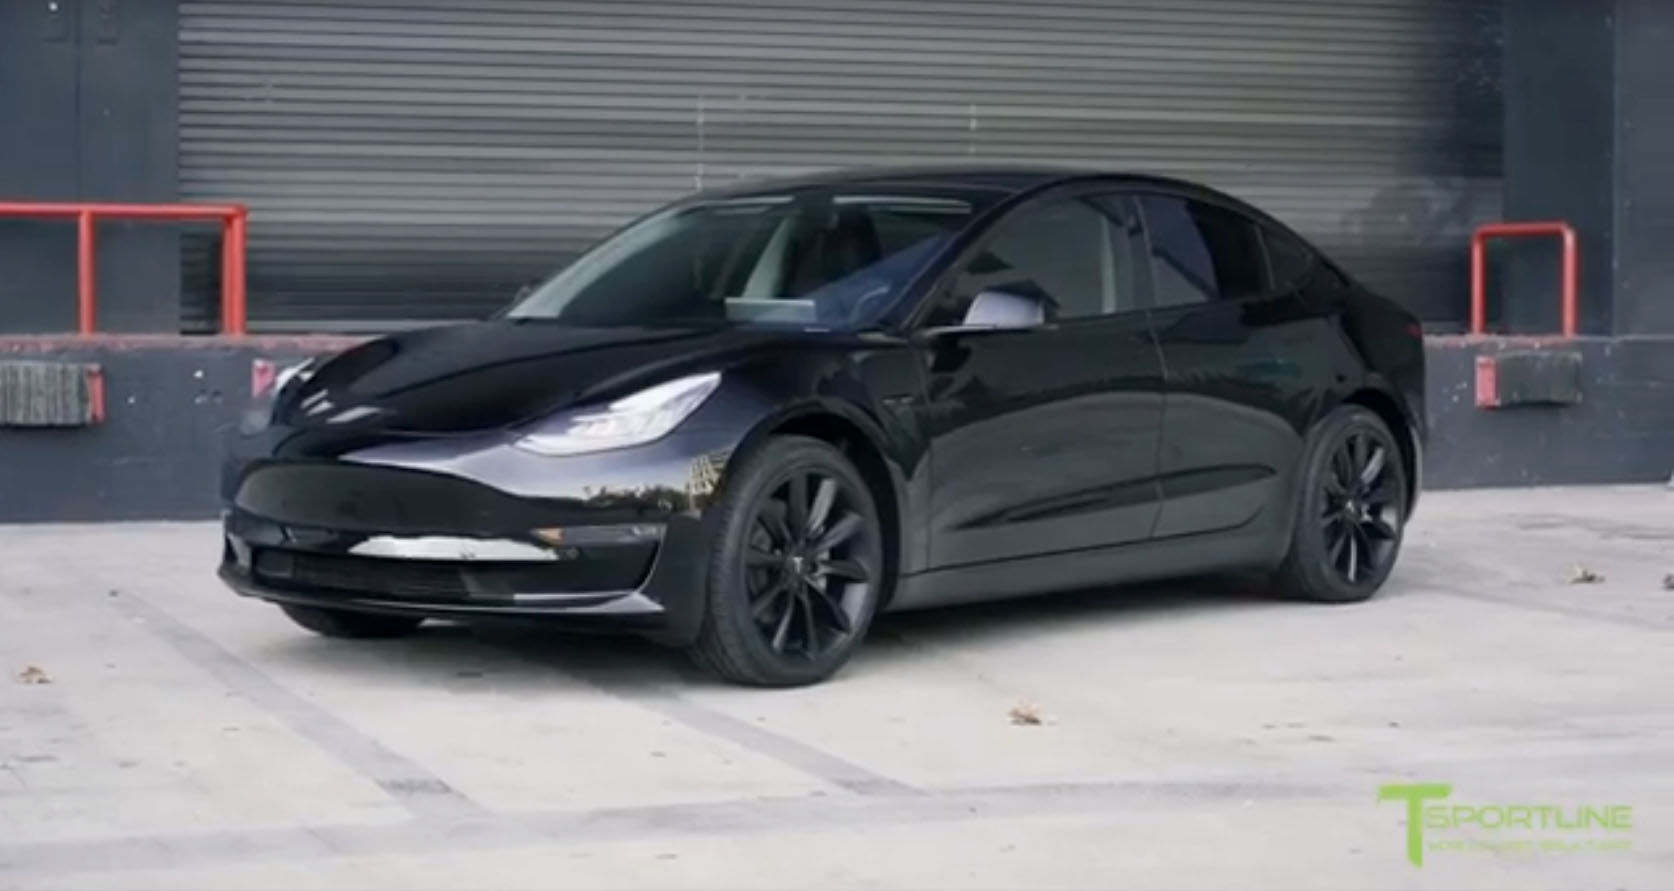 Nieuw Blacked-Out Tesla Model 3 Looks Set to Do a Drive-by Shooting VW-19